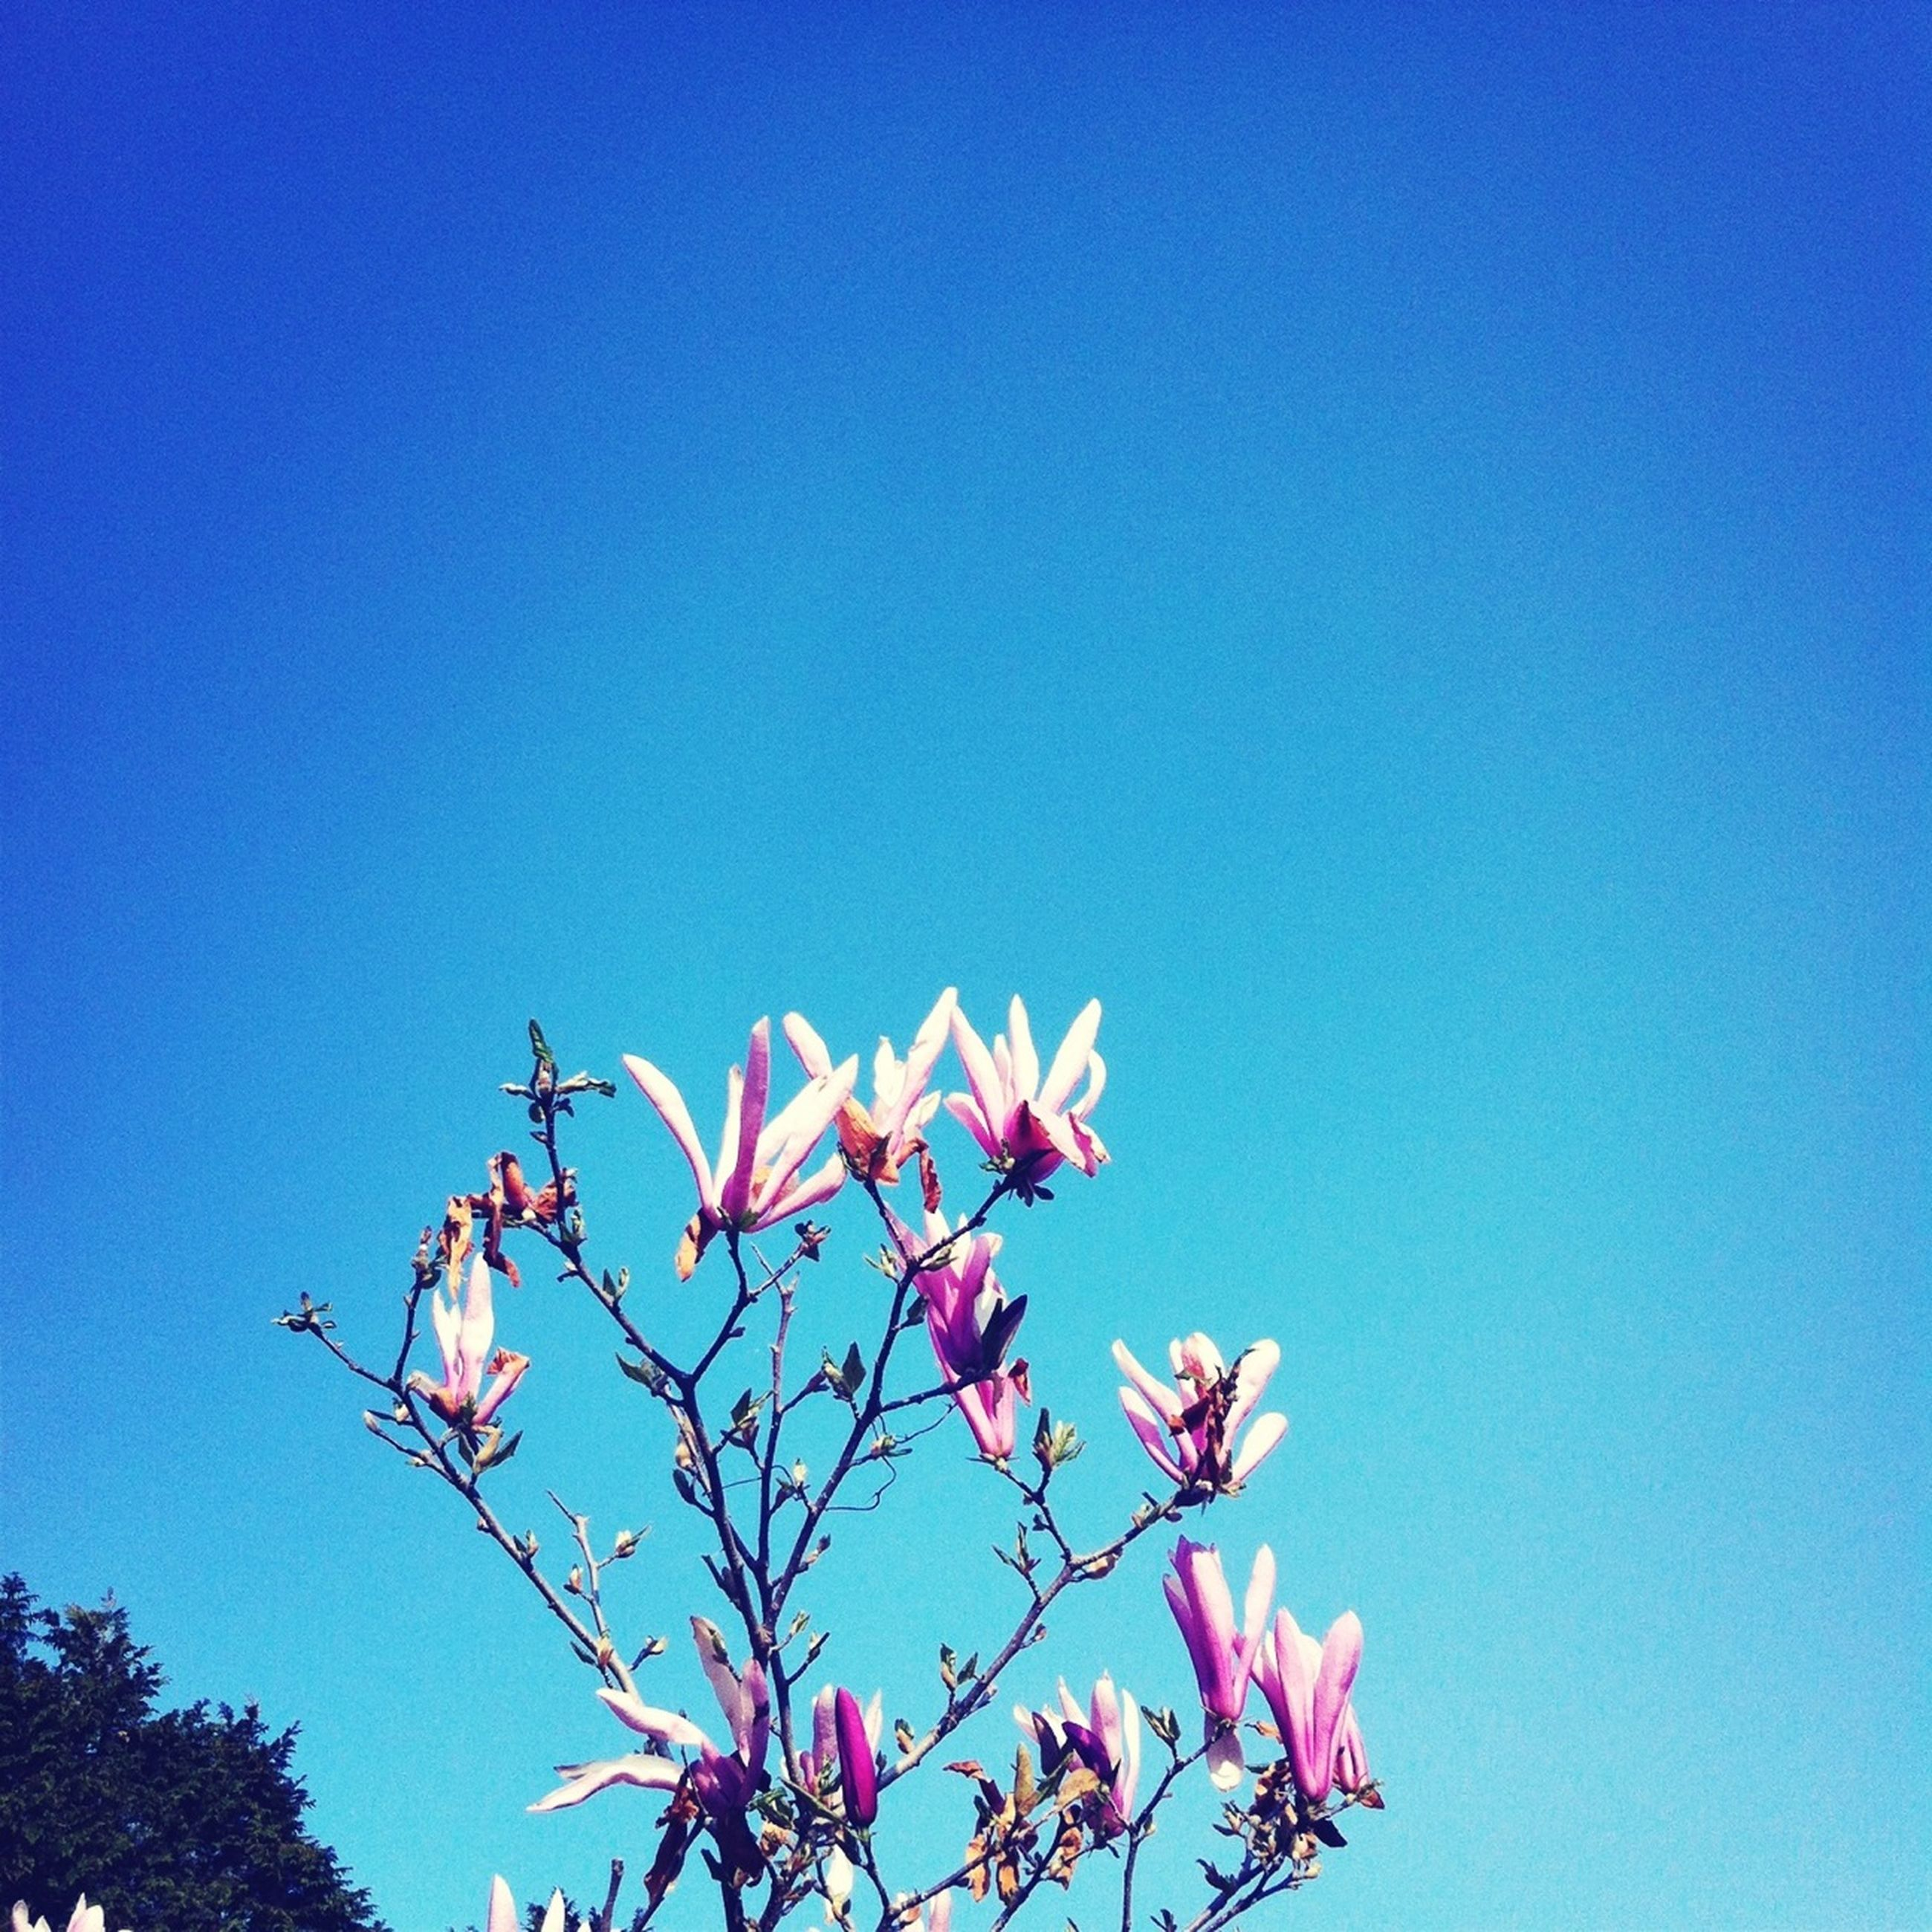 clear sky, low angle view, blue, copy space, flower, growth, nature, beauty in nature, tree, branch, fragility, pink color, freshness, high section, outdoors, day, no people, sky, tranquility, blooming